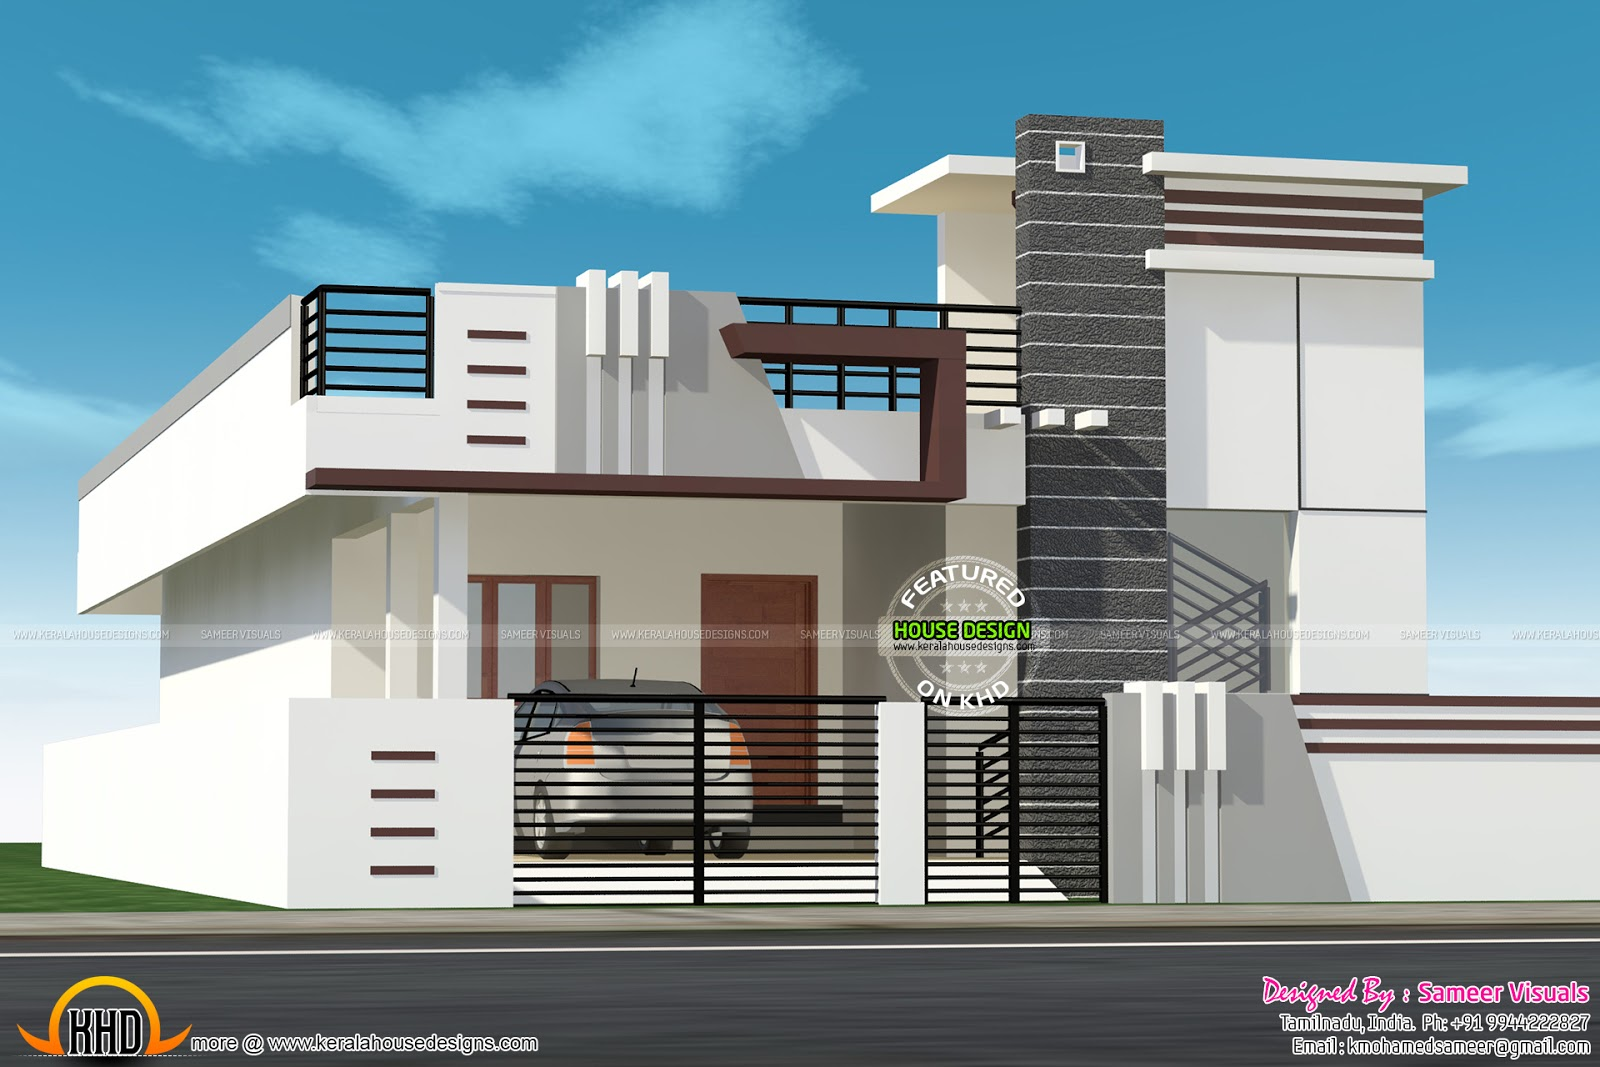 125 sq m small house kerala home design and floor plans for Tamilnadu home design photos